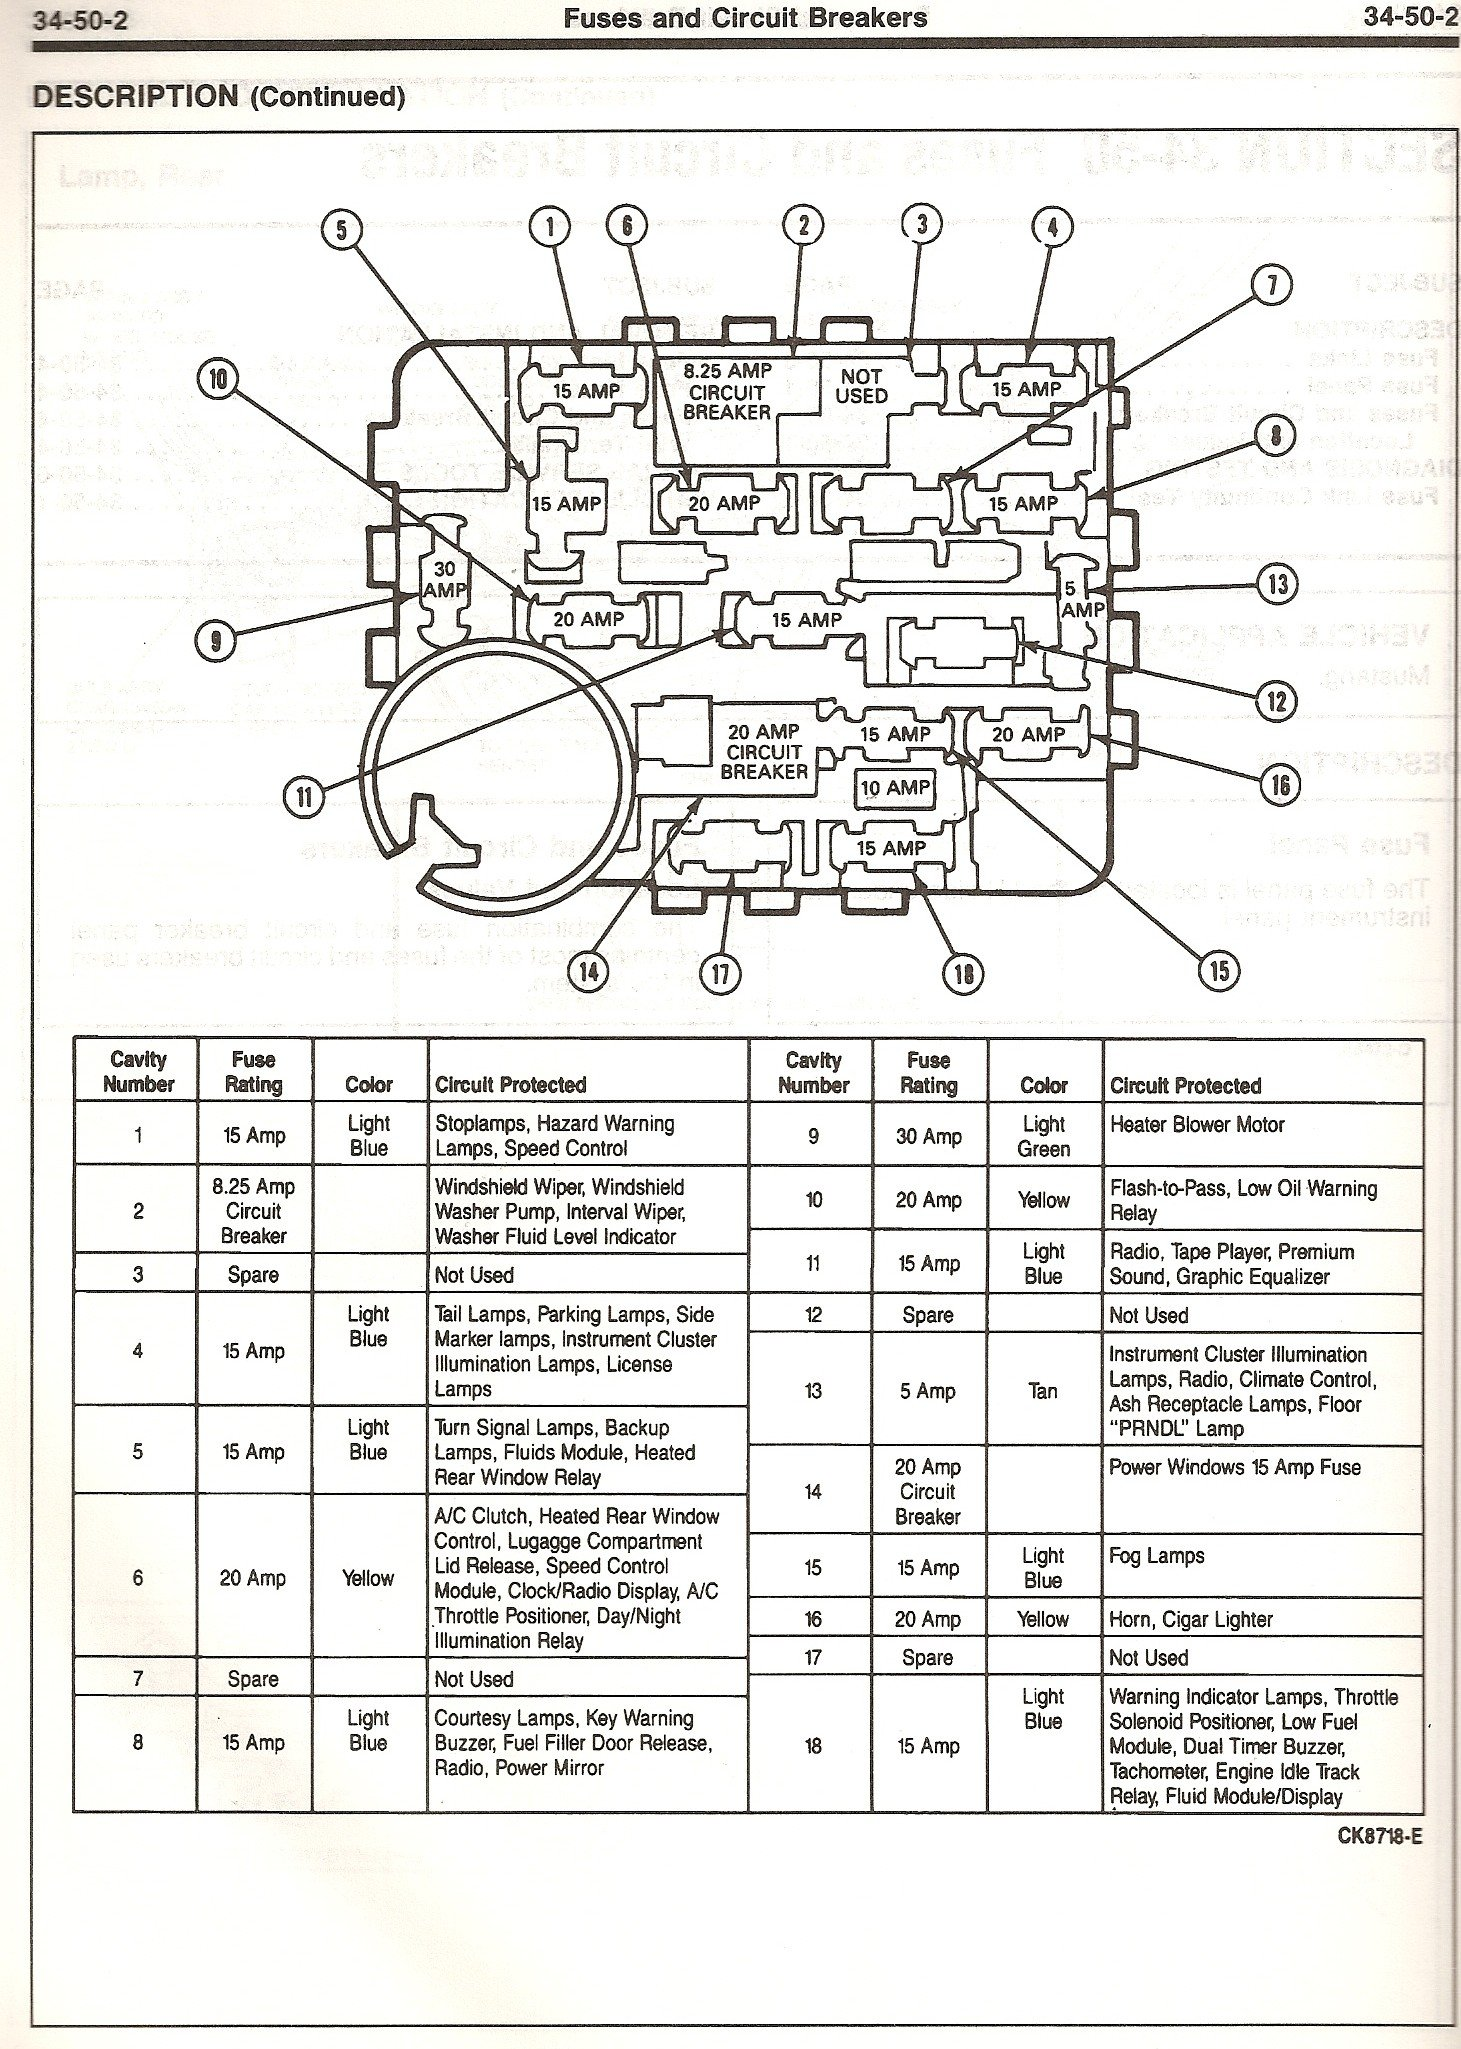 P 0900c1528008bf26 furthermore 97 Eclipse Cooling Fan Plug Wiring Diagram in addition Electric Radiator Fan Wiring Diagram in addition Honda Civic Fuse Diagram besides 482800022528094020. on vw jetta relay location wiring diagrams image free